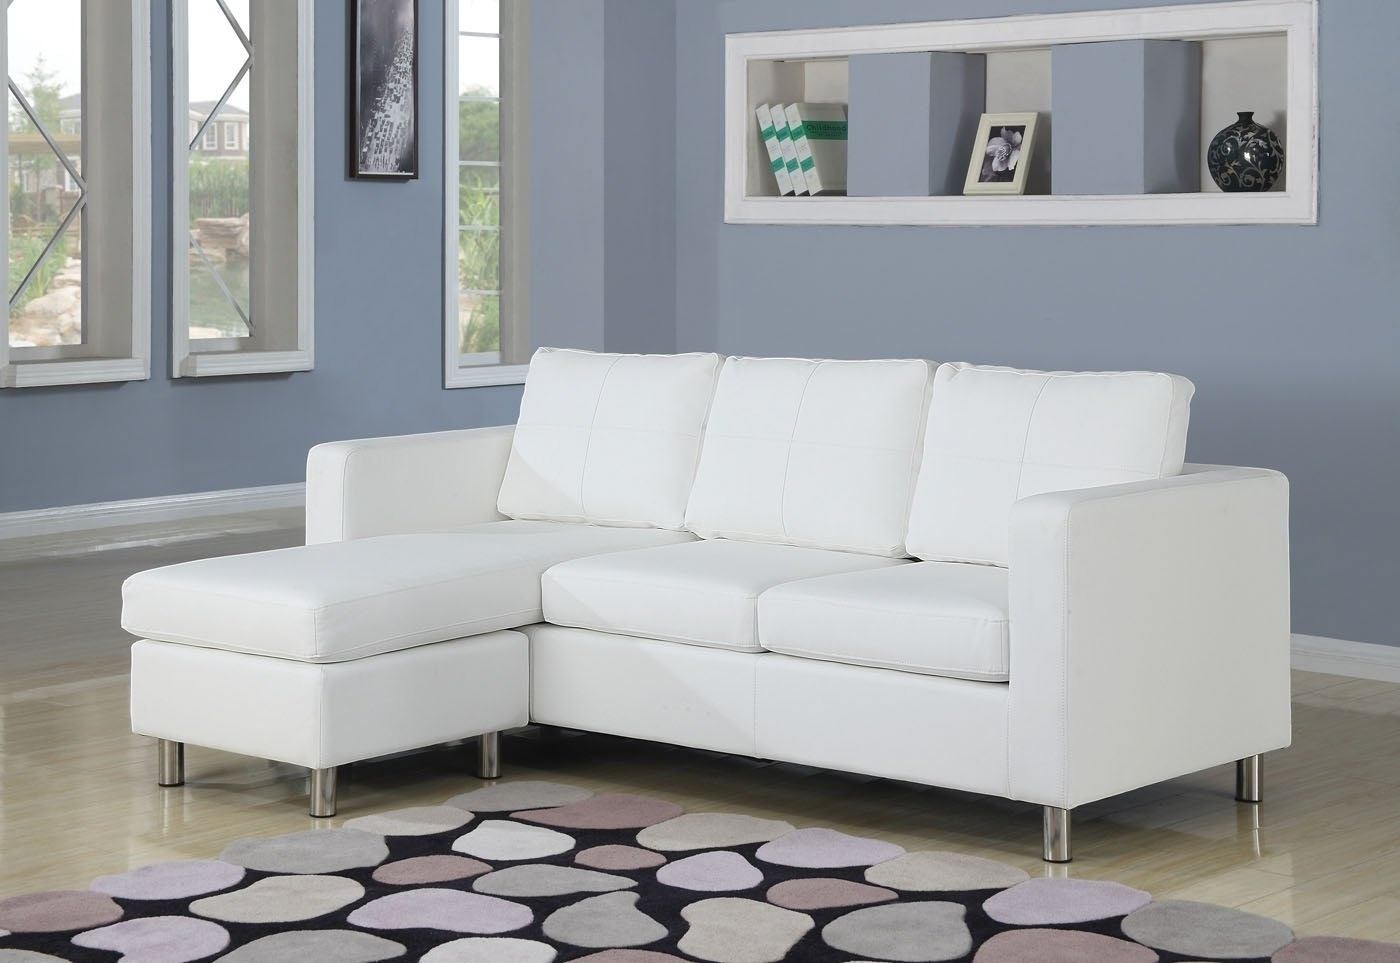 Most Current L White Leather Sectional Sofa With Chaise And Back Also Arms On With Small Chaises (View 11 of 15)